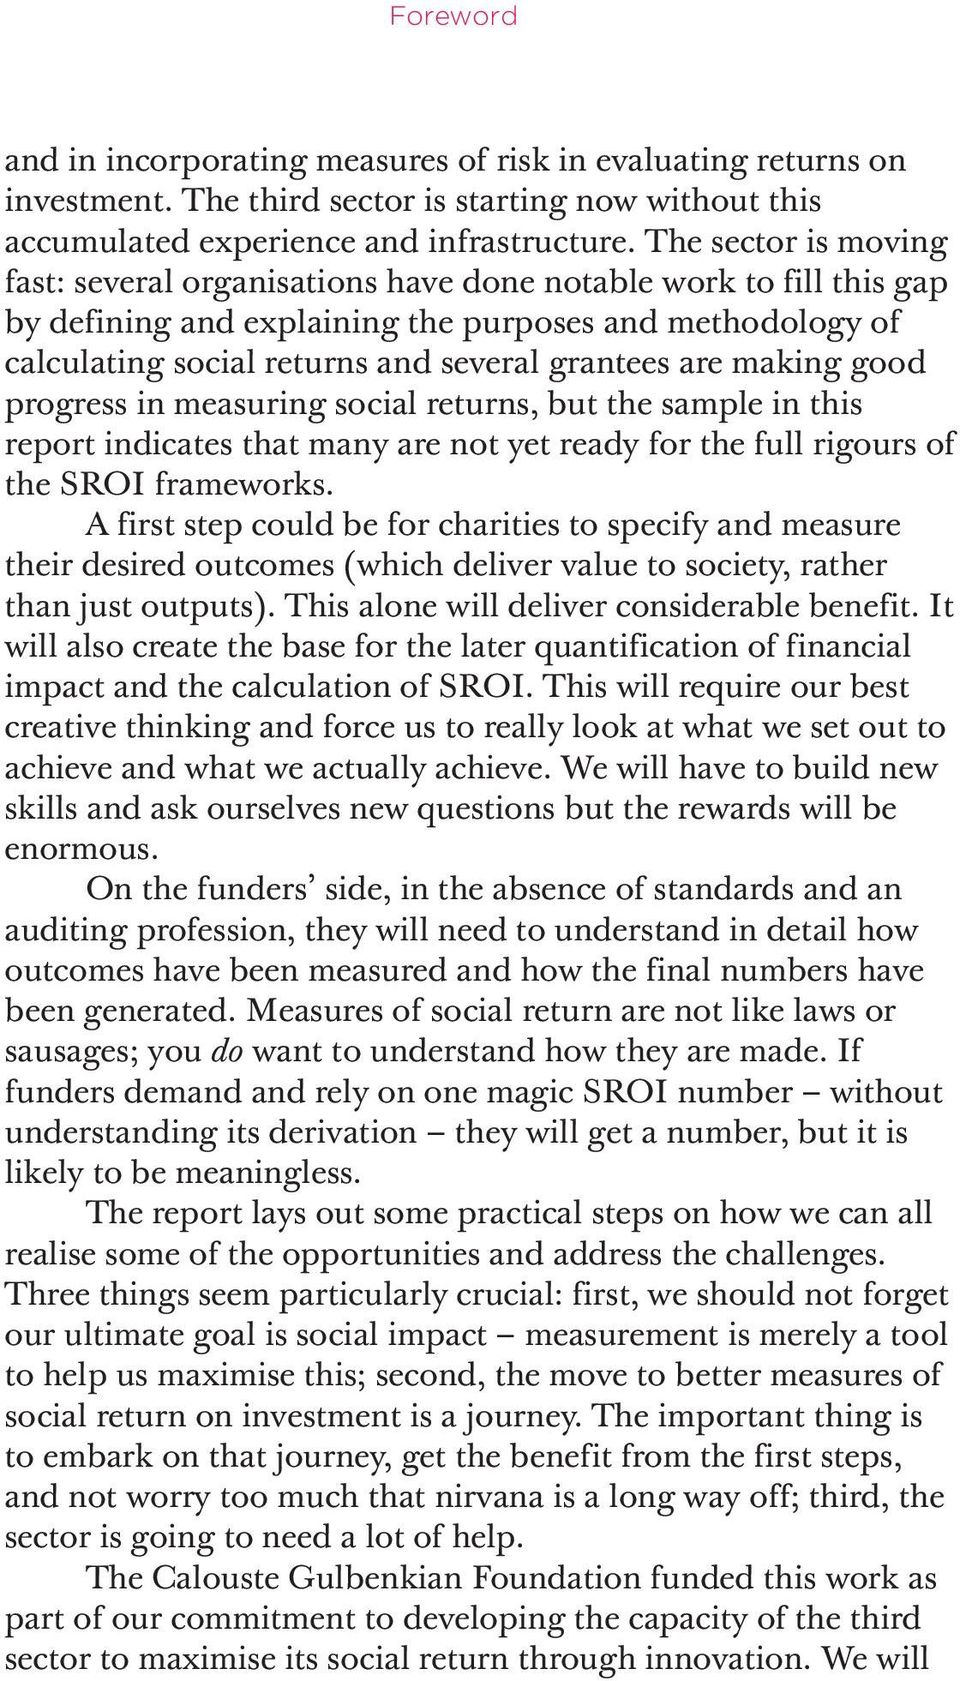 making good progress in measuring social returns, but the sample in this report indicates that many are not yet ready for the full rigours of the SROI frameworks.